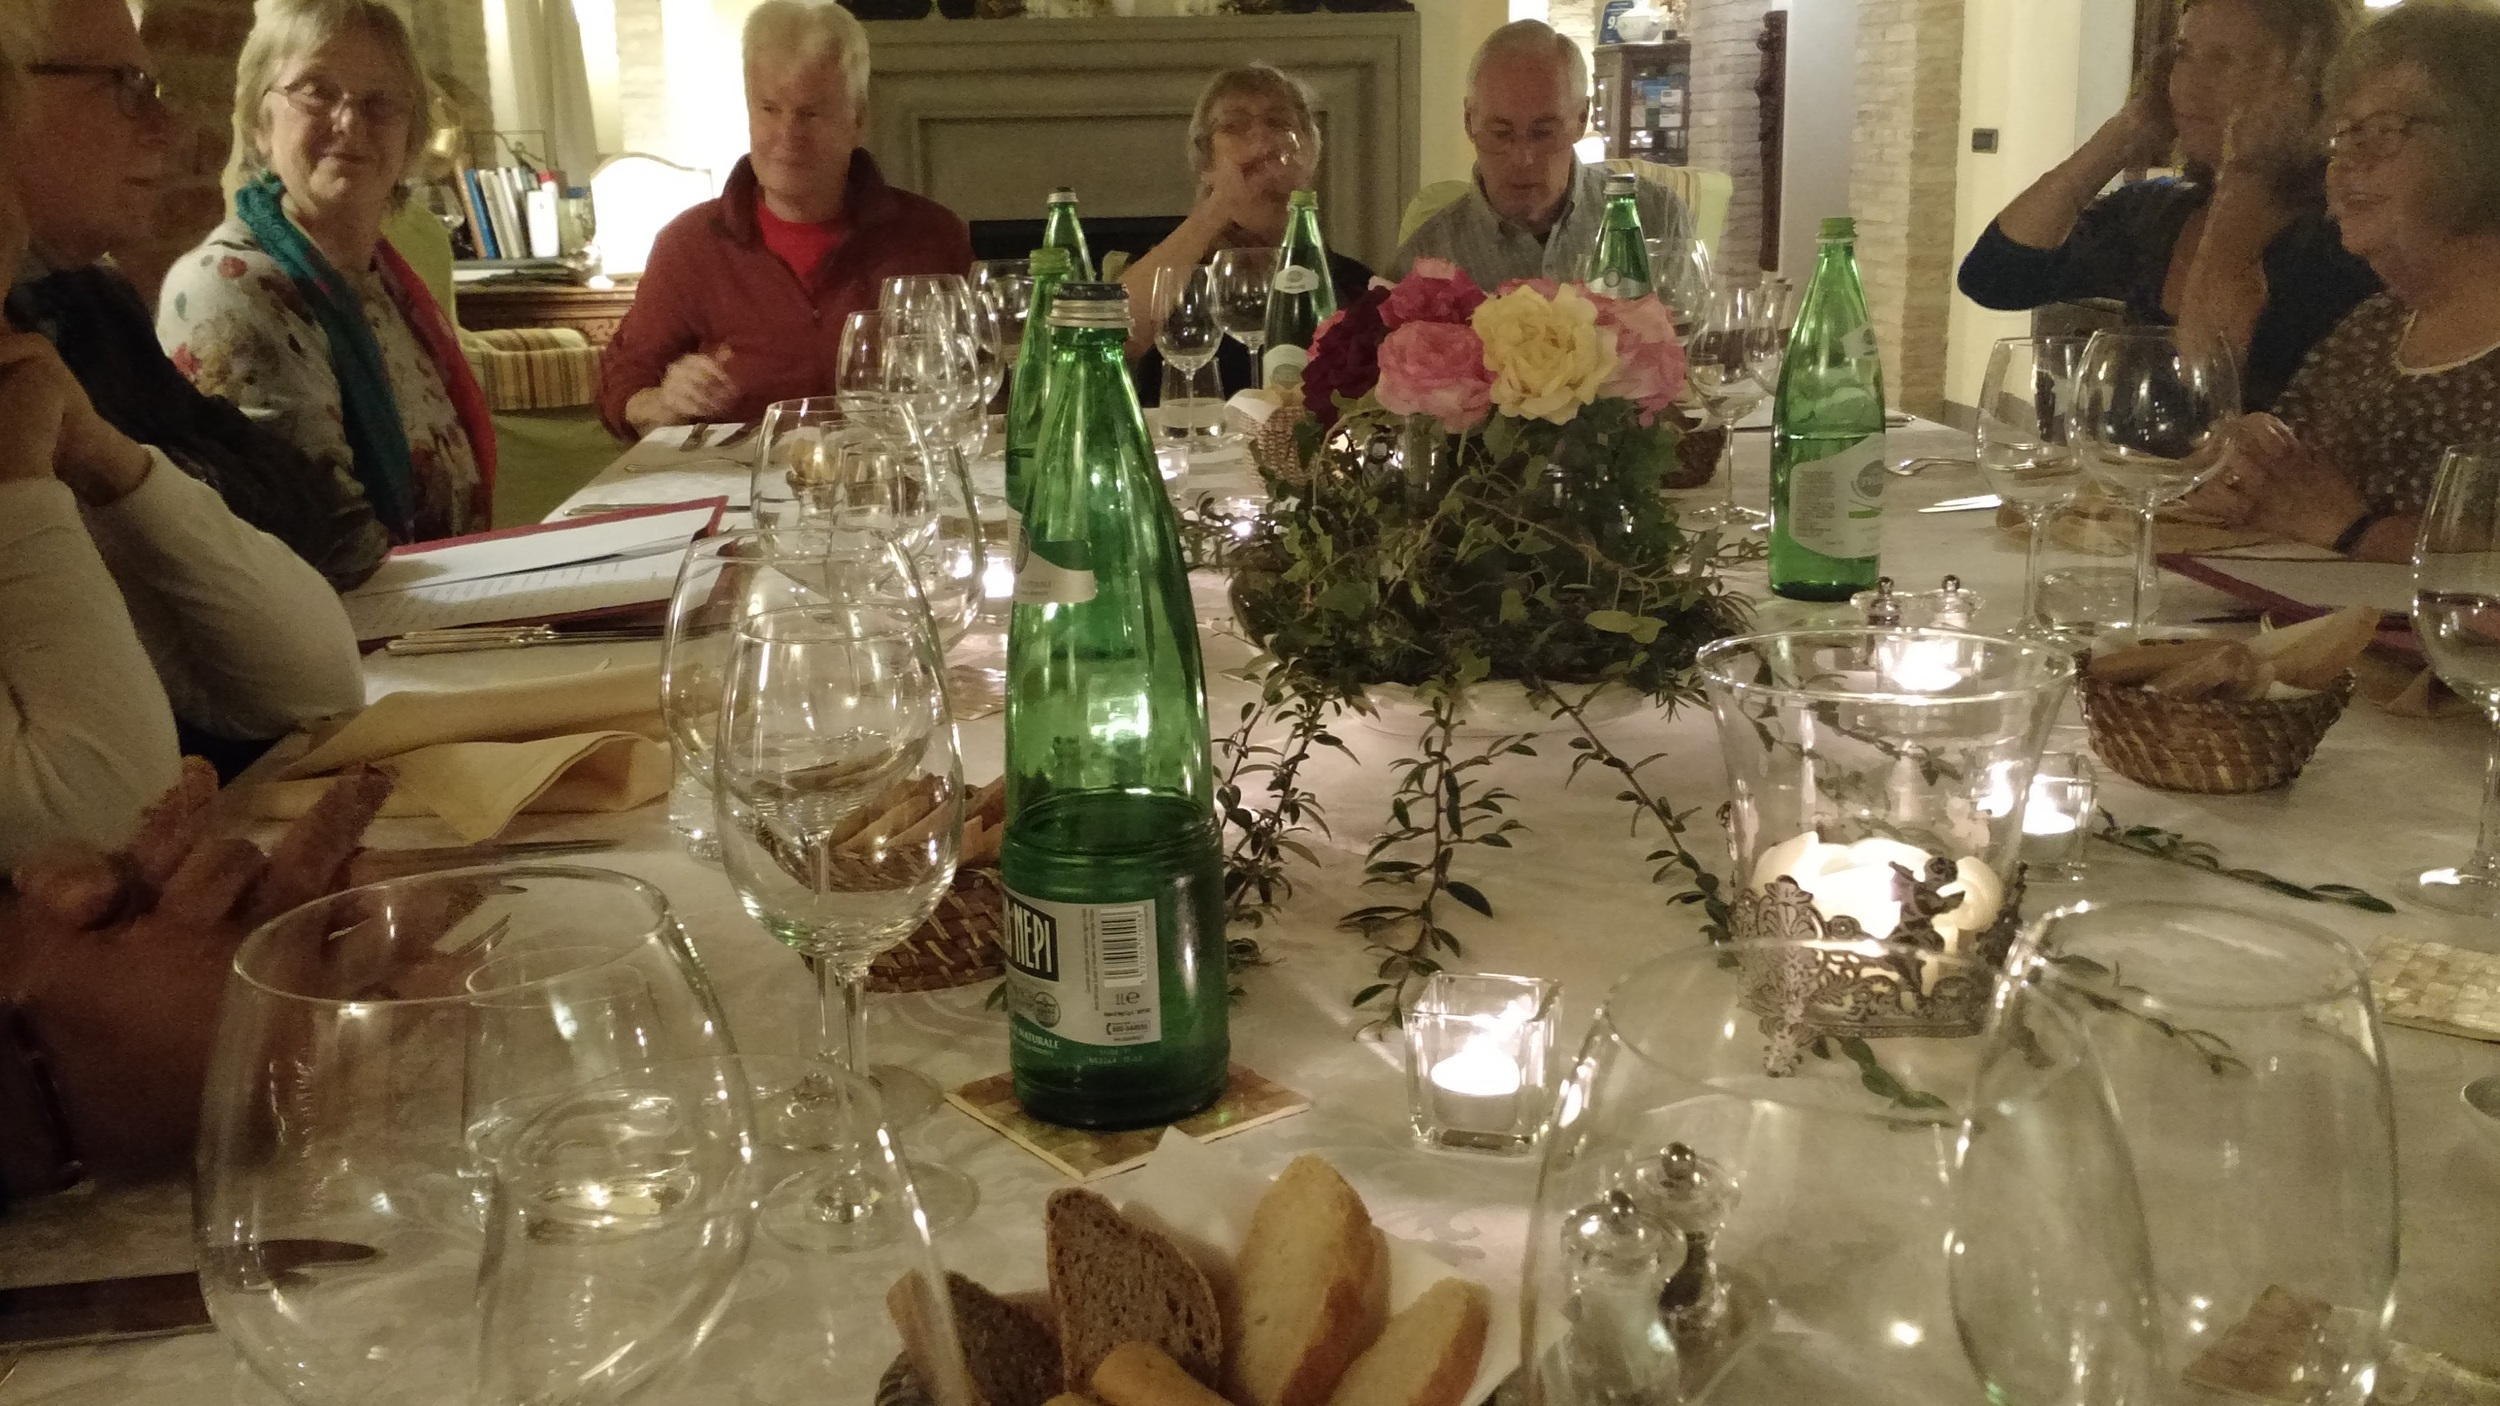 Dinner at our Umbrian villa